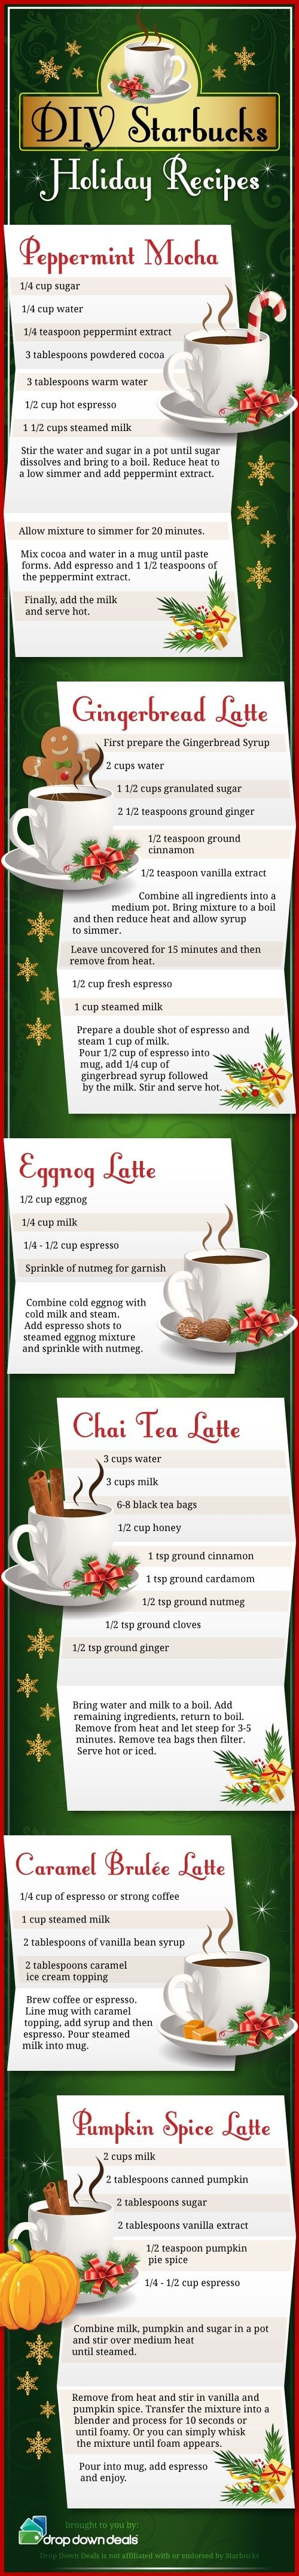 Starbucks Holiday Recipes! Save money and make your own!